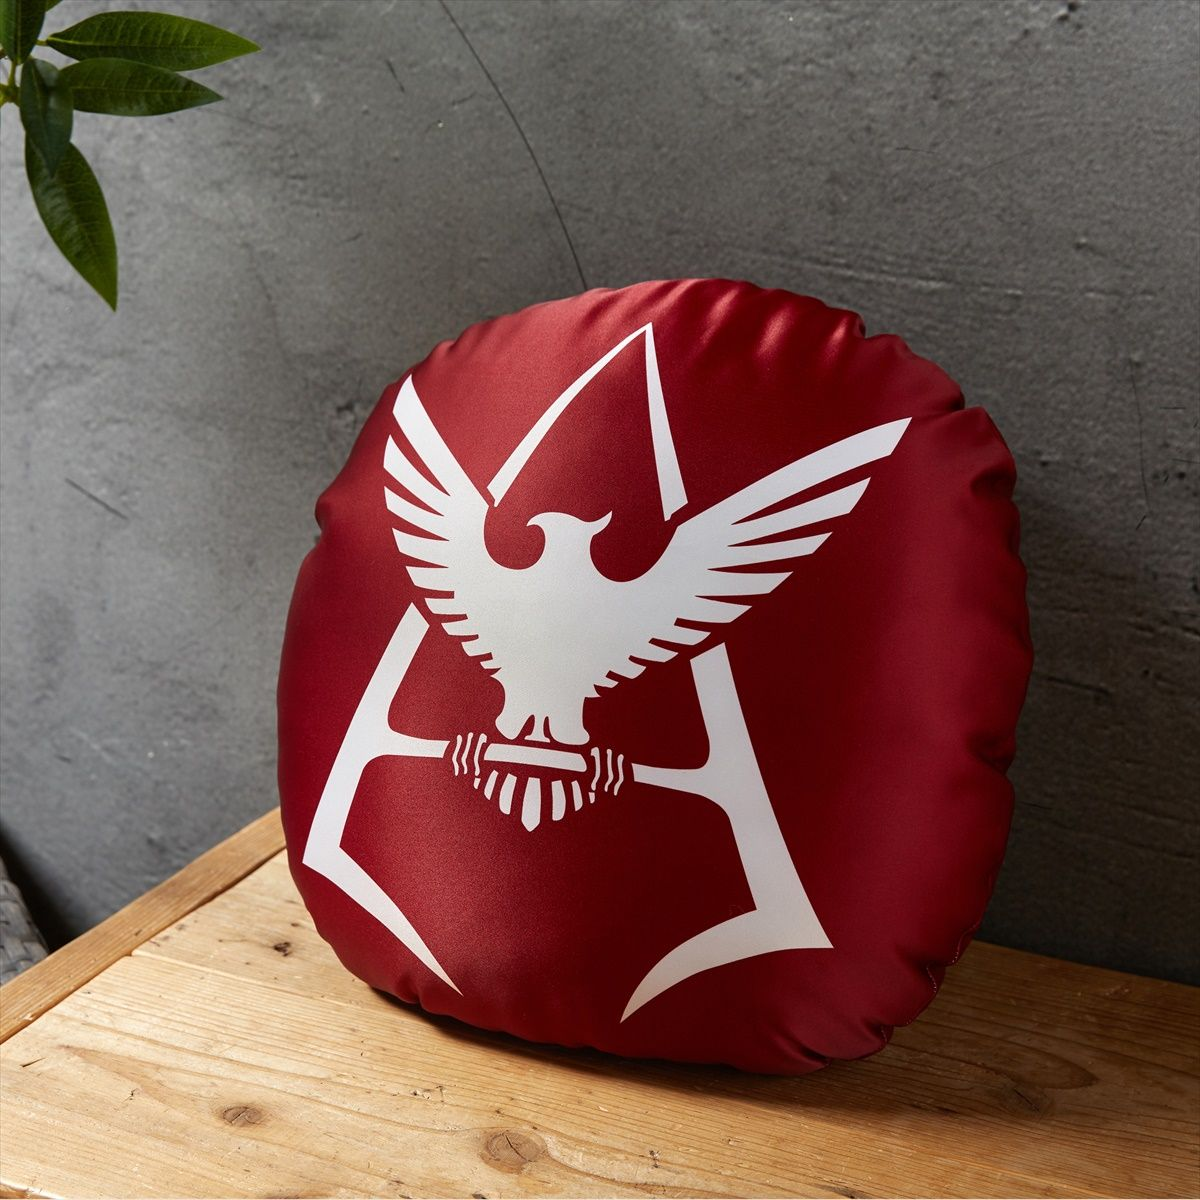 Mobile Suit Gundam Char Aznable Logo Pillow